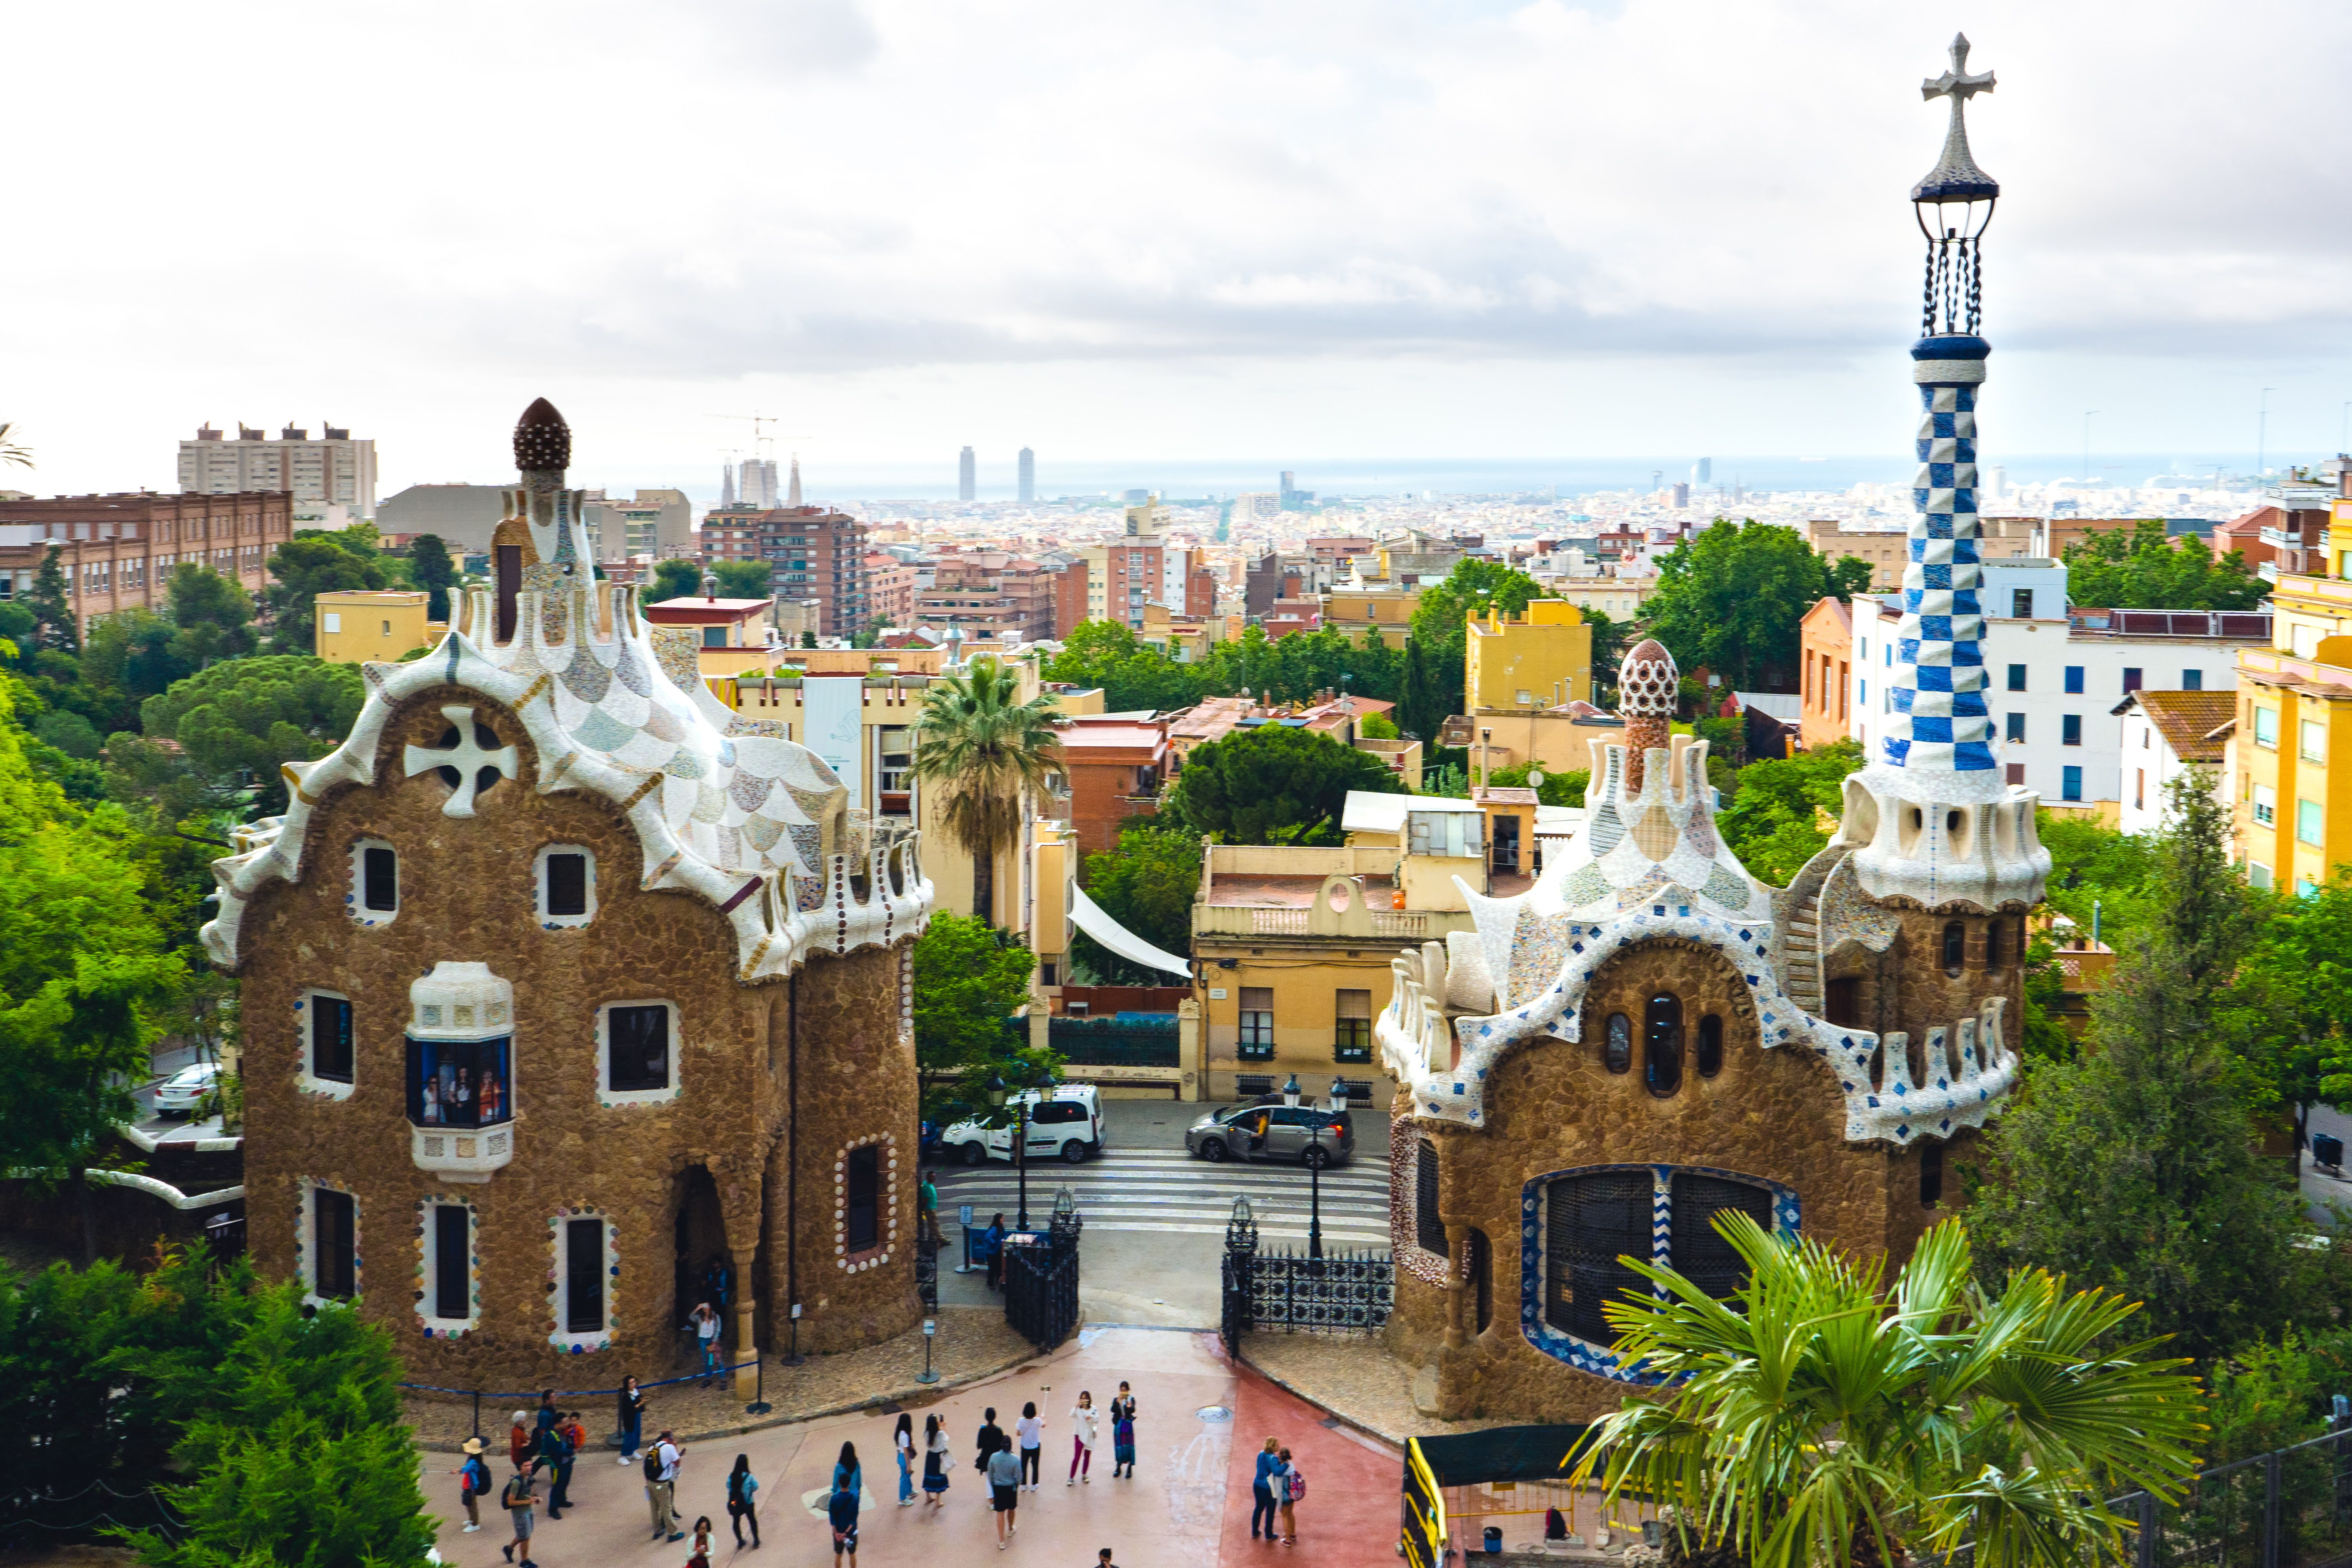 Overlooking the courtyard in Park Guell